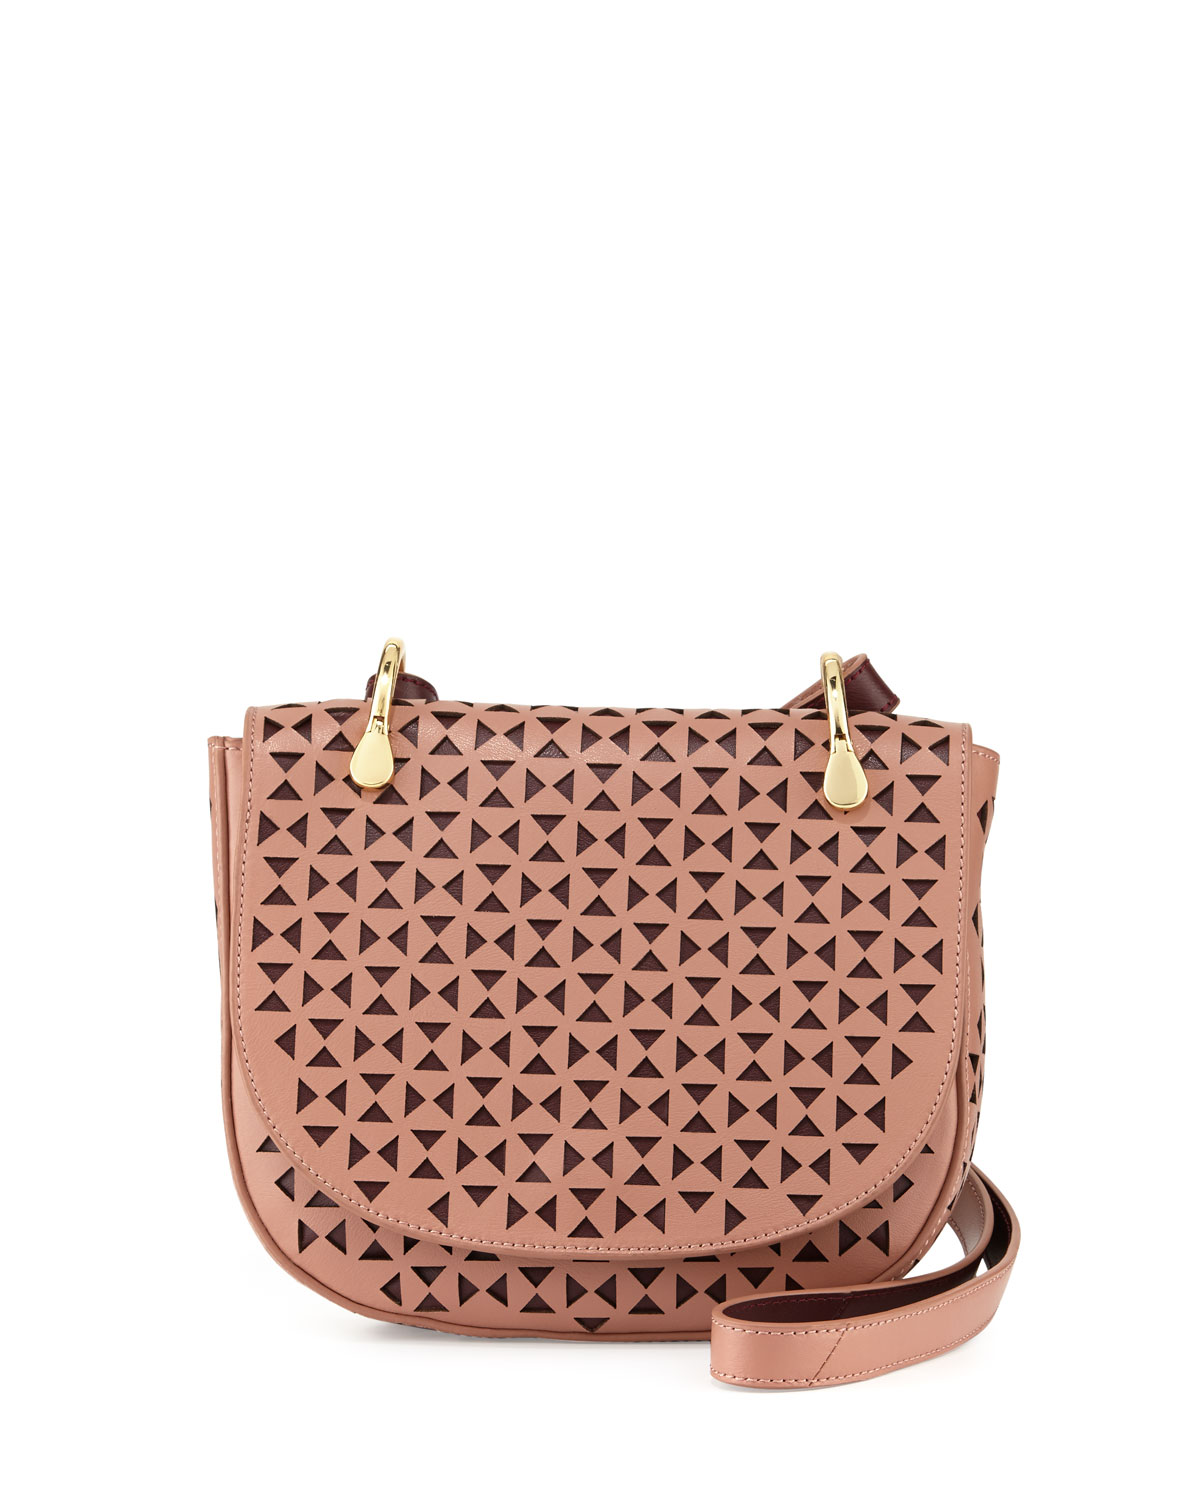 929e23e602 Elizabeth   James Zoe Perforated Leather Saddle Bag